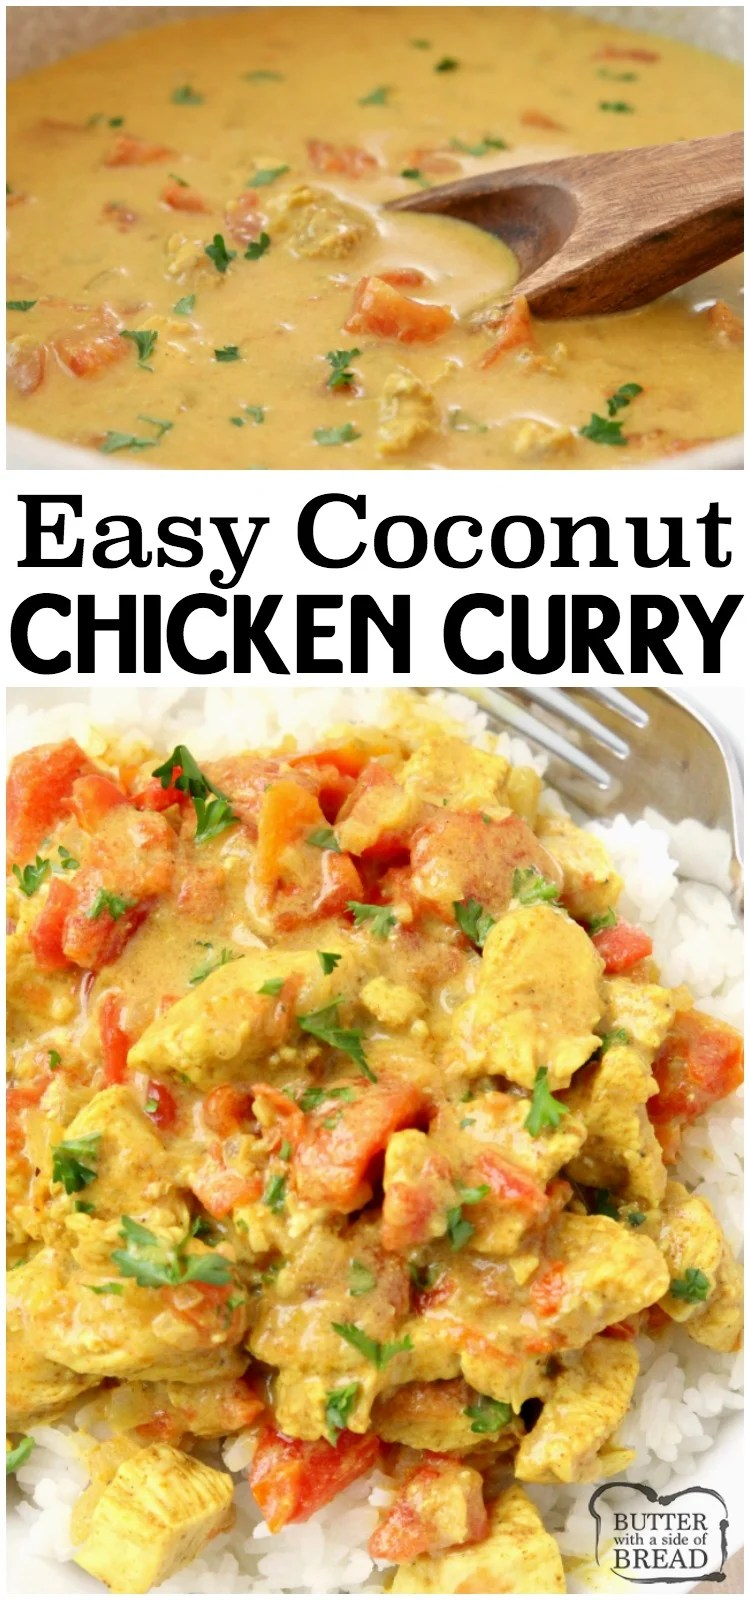 Coconut Chicken Curry recipe perfect for a busy weeknight meal! Simple, flavorful and healthy 20-minute chicken dinner for anyone who loves a mild chicken curry. Our Coconut Curry Chicken recipe uses diced chicken, tomatoes, coconut milk and just enough curry to add flavor, but not make it too spicy. It's the perfect chicken curry recipe for families!